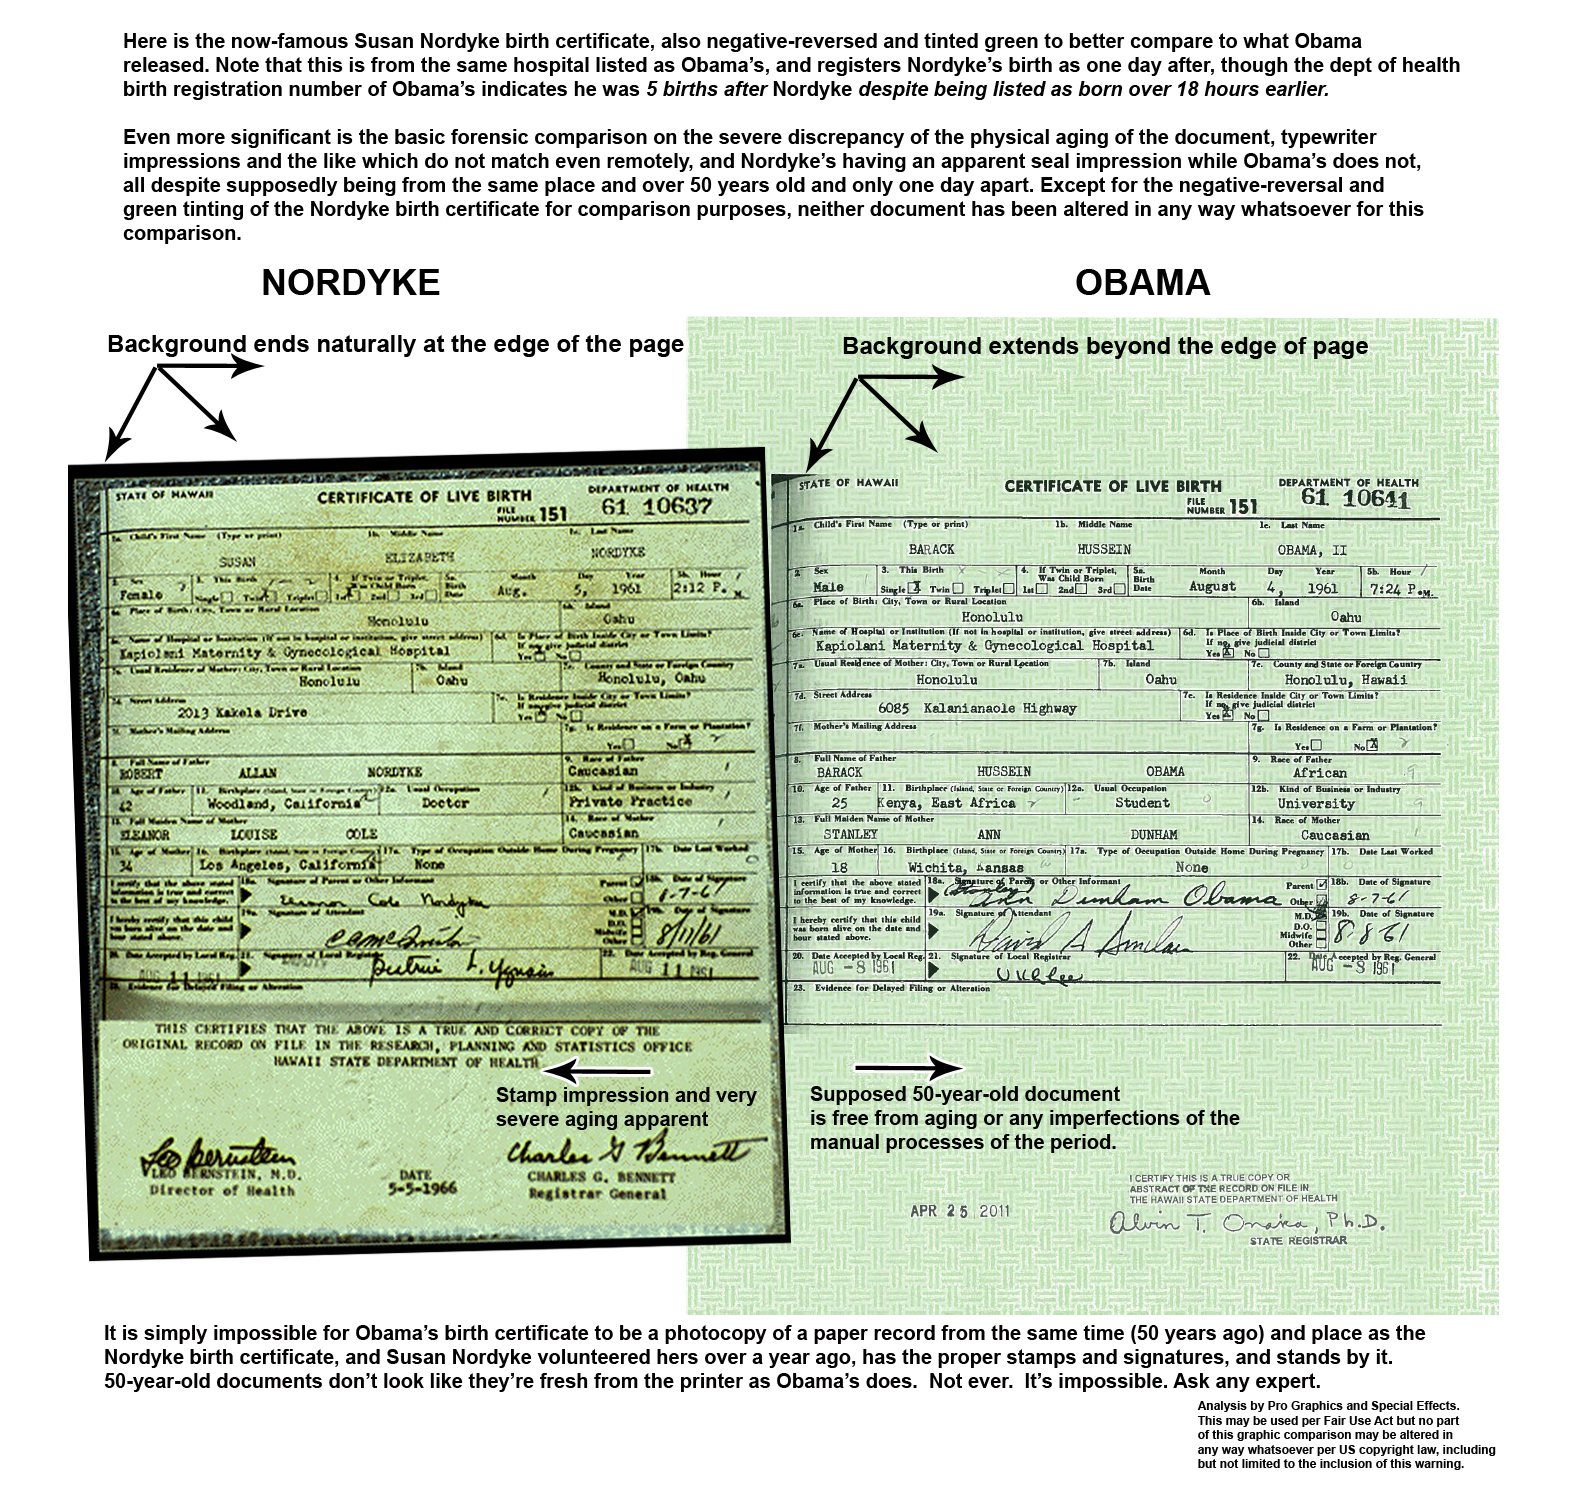 Give us liberty plus more proof from other experts that obama adobe software engineer doubts obama birth certificate concludes something digital came between the paper and the glass by dr jerome corsi wnd 1betcityfo Image collections